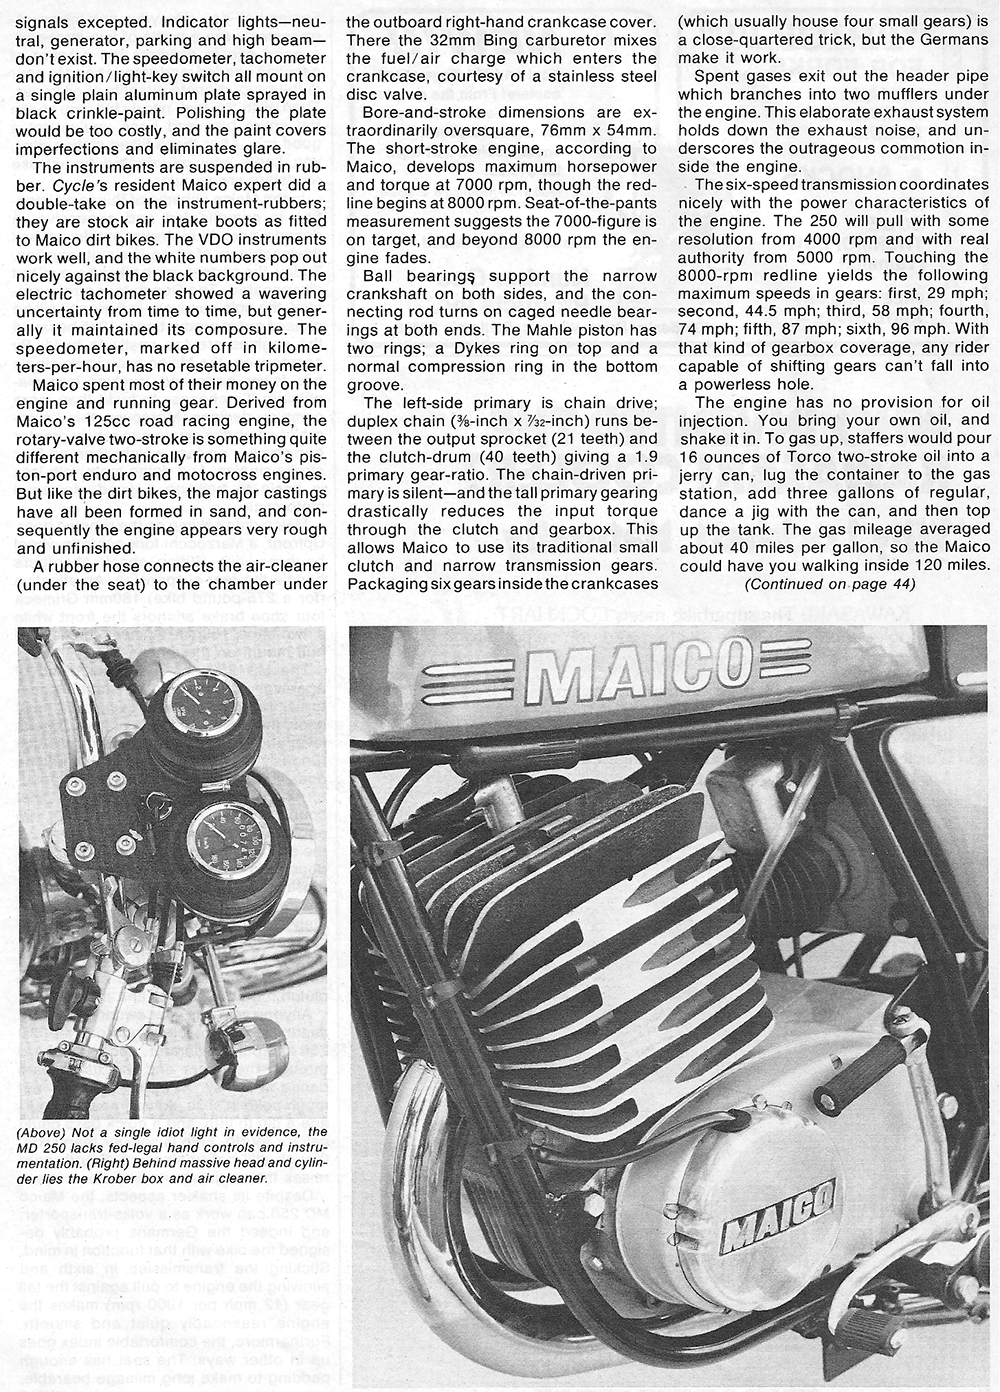 1975 Maico MD250 road test 3.png